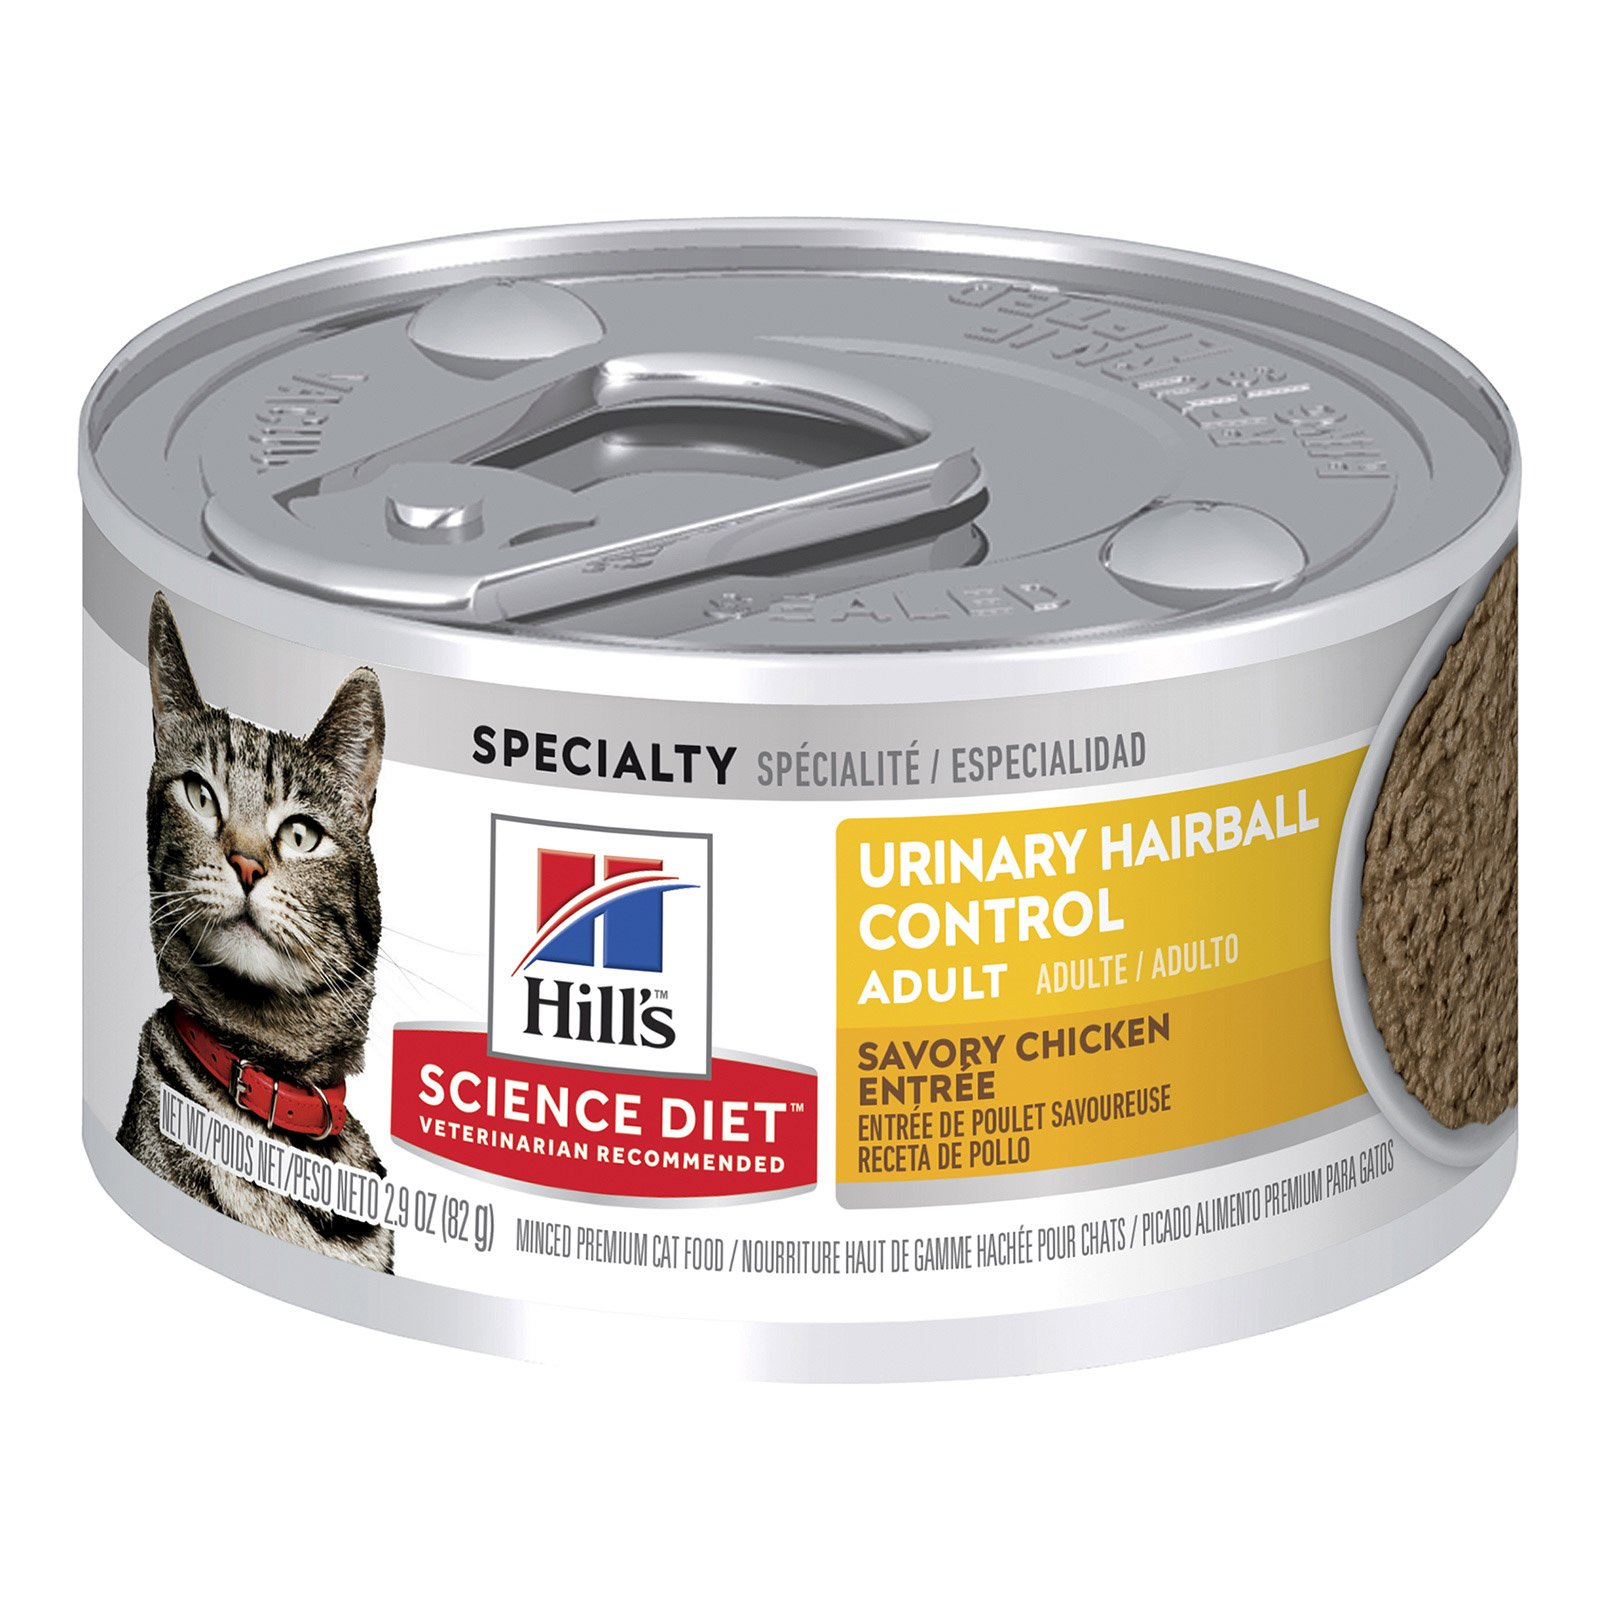 Hill's Science Diet Adult Urinary Hairball Control Chicken Entree Canned Cat Food 82 Gm